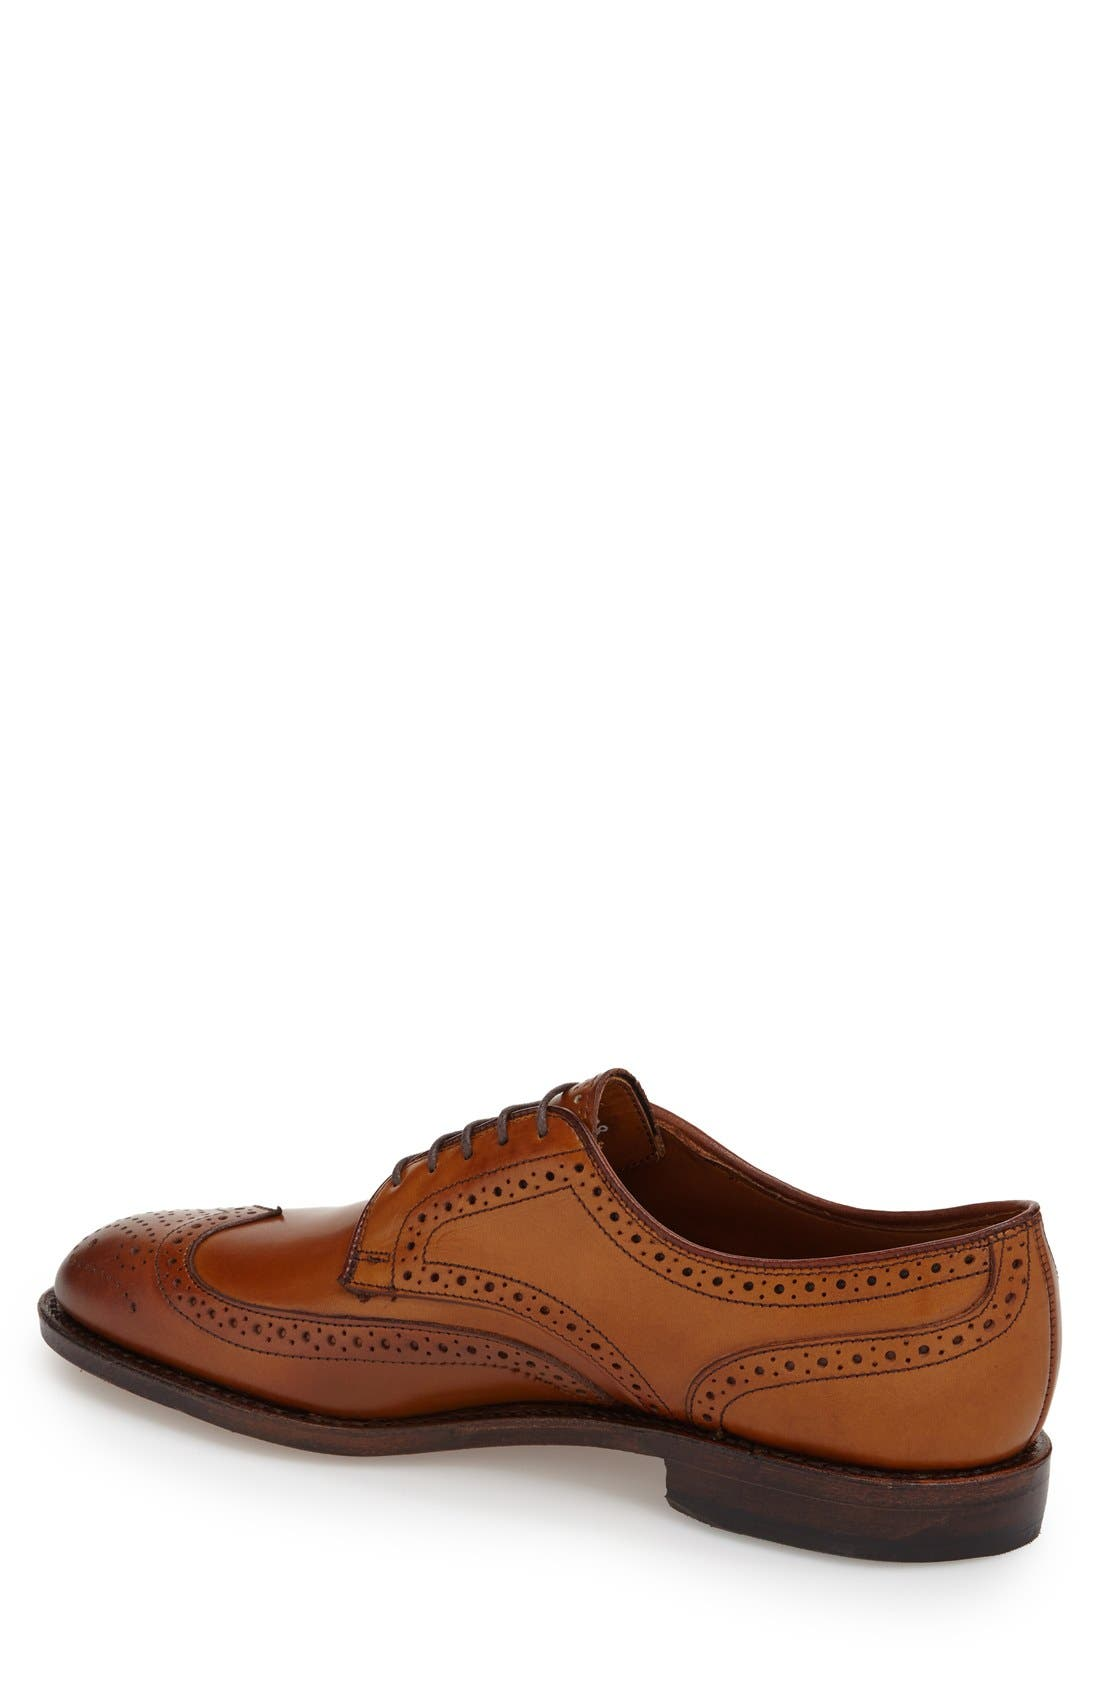 'Madison Park' Wingtip,                             Alternate thumbnail 2, color,                             Walnut Leather